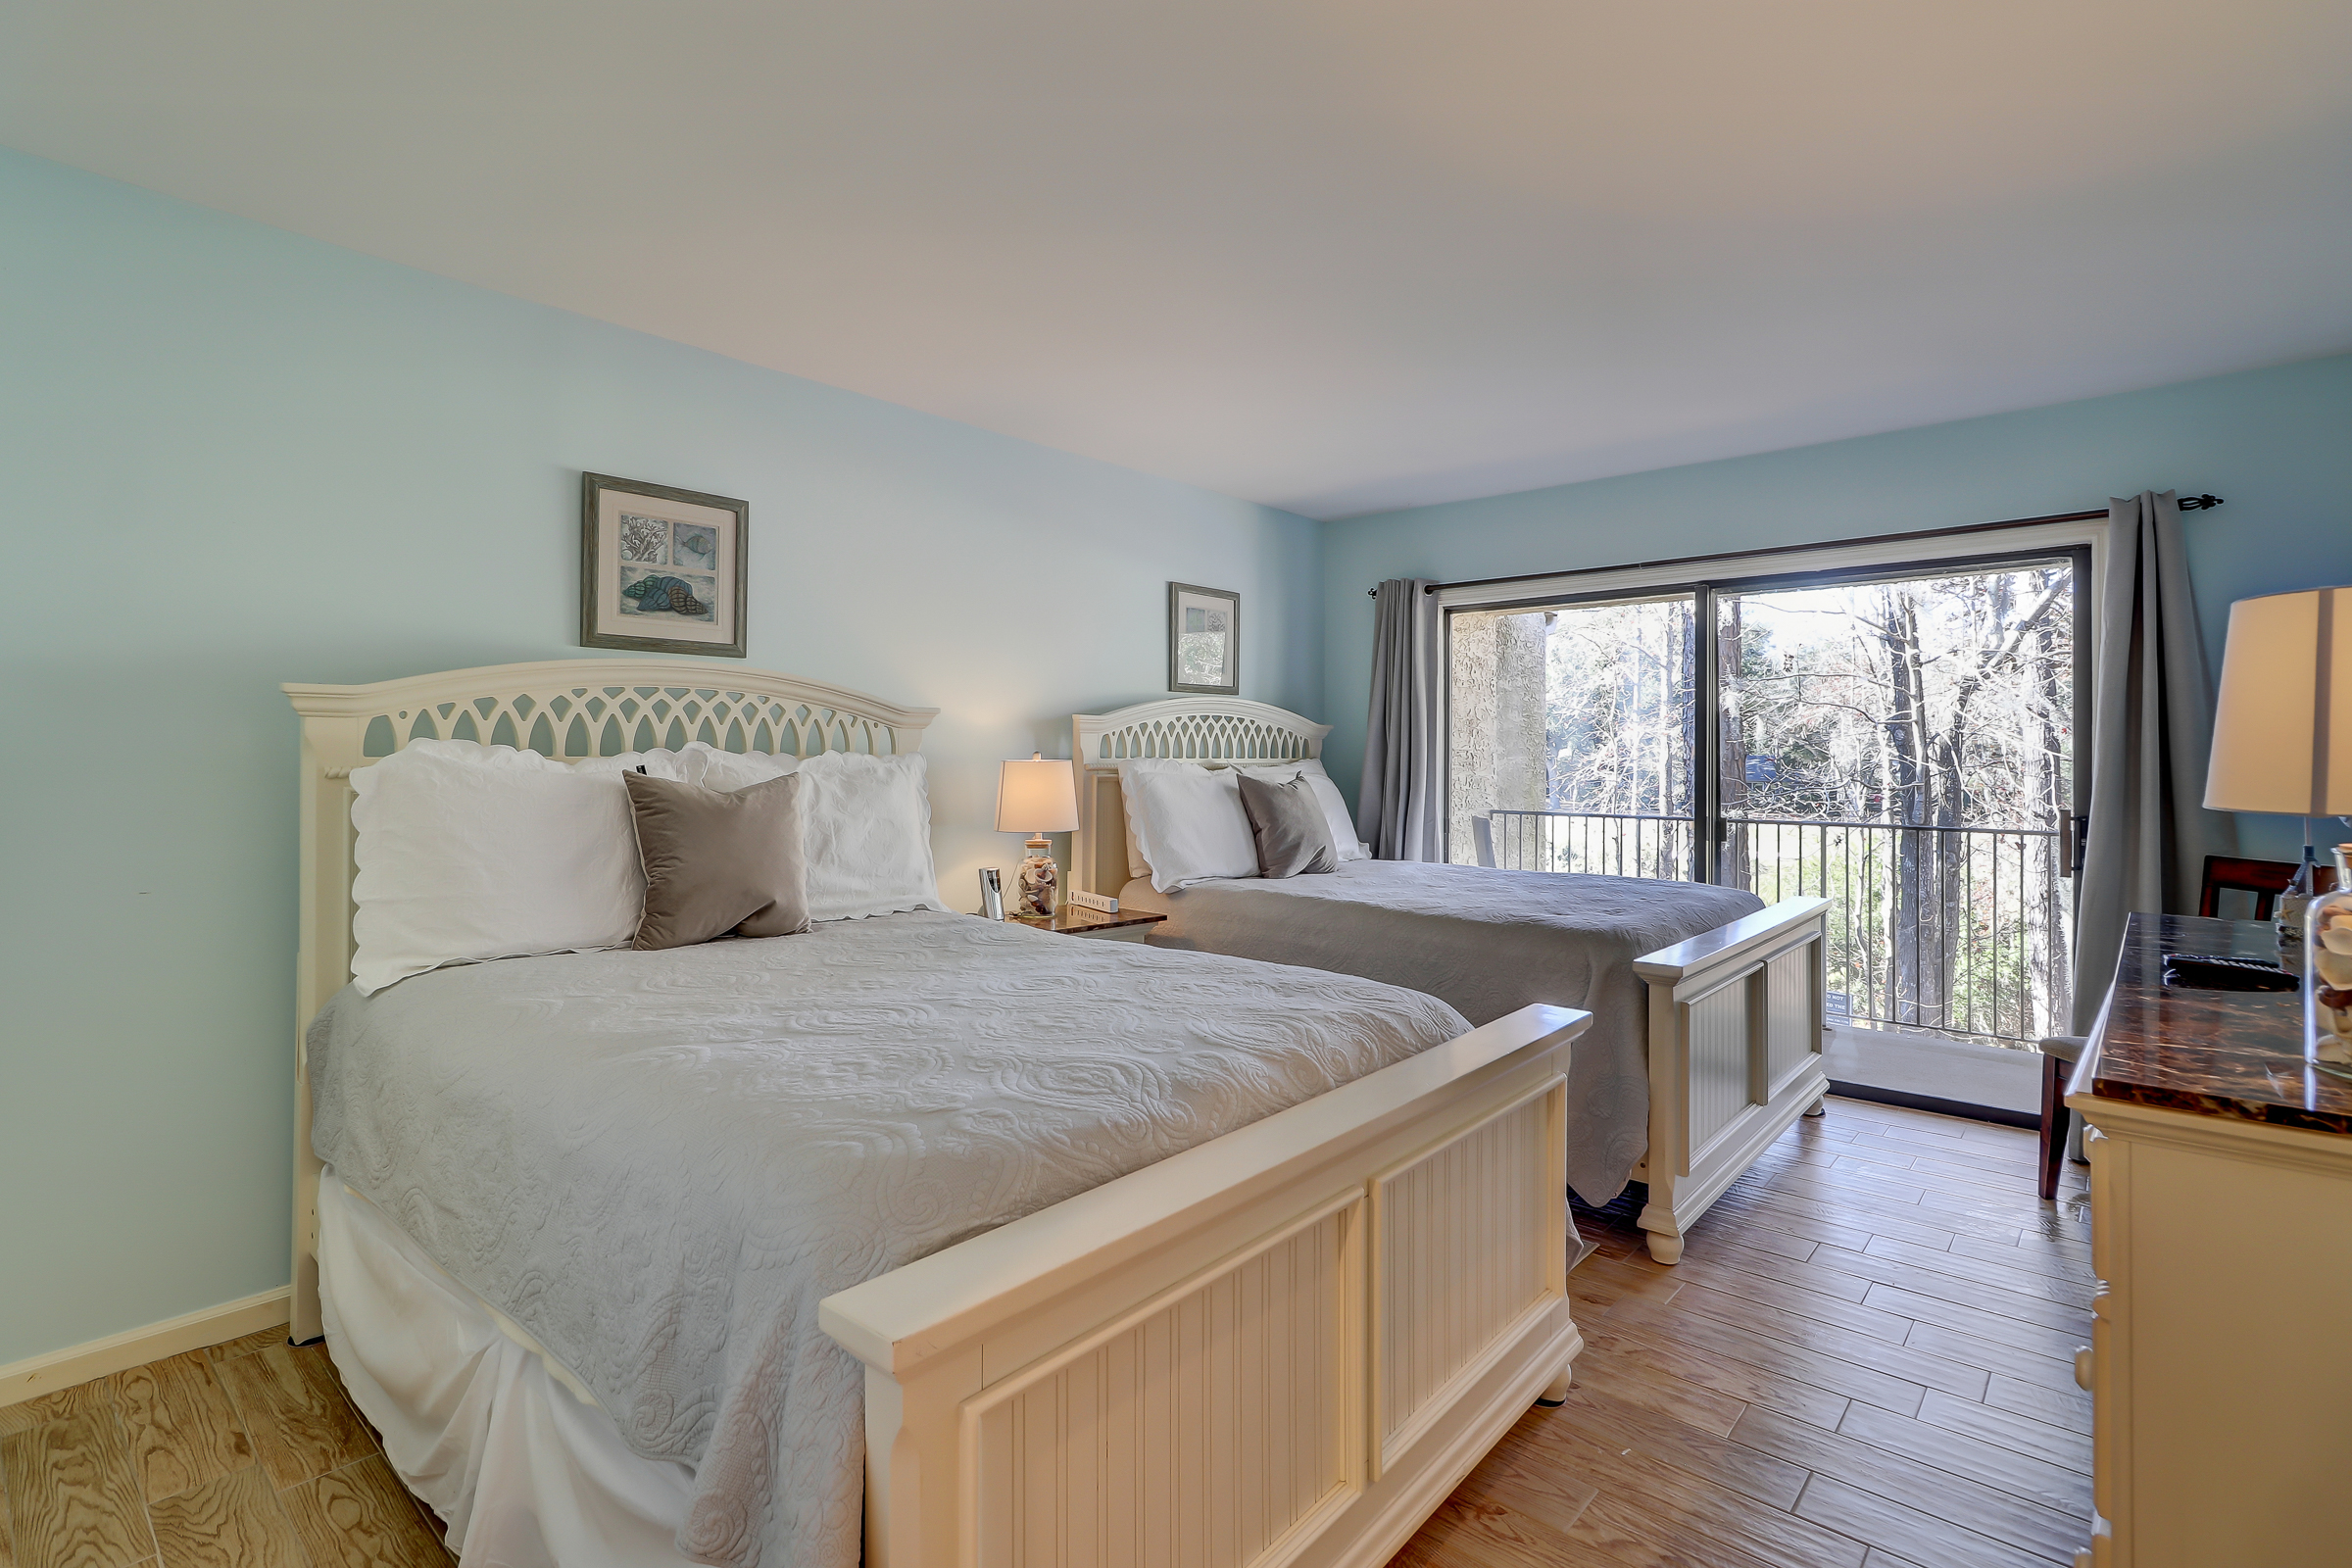 The guest bedroom features 2 queen beds, wall-mounted flat panel TV and access to a hall bathroom with tub/shower combo